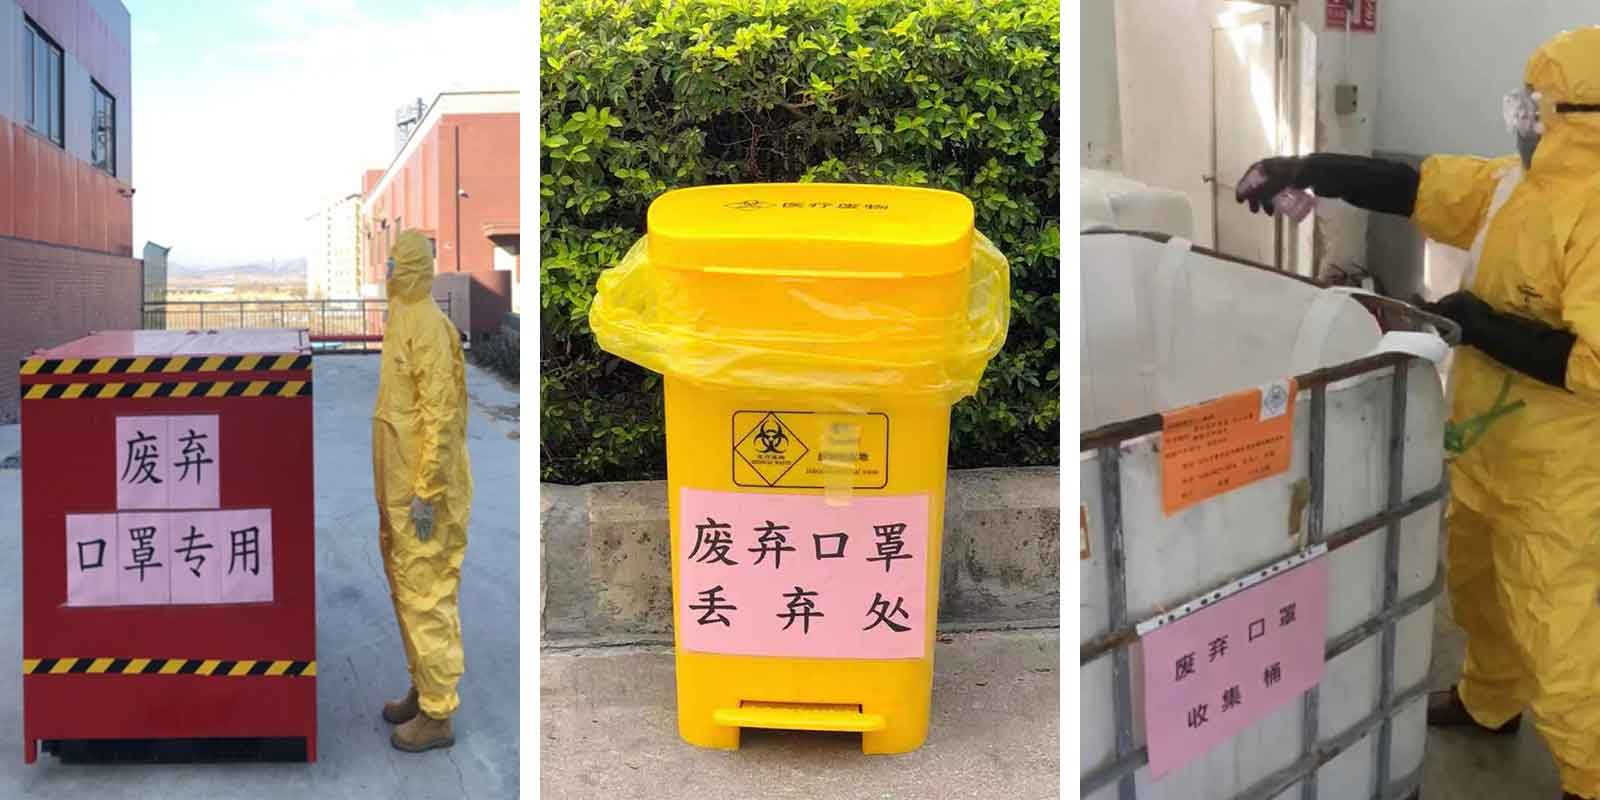 Used face masks and other personal protective equipment were collected in dedicated medical waste bins onsite.